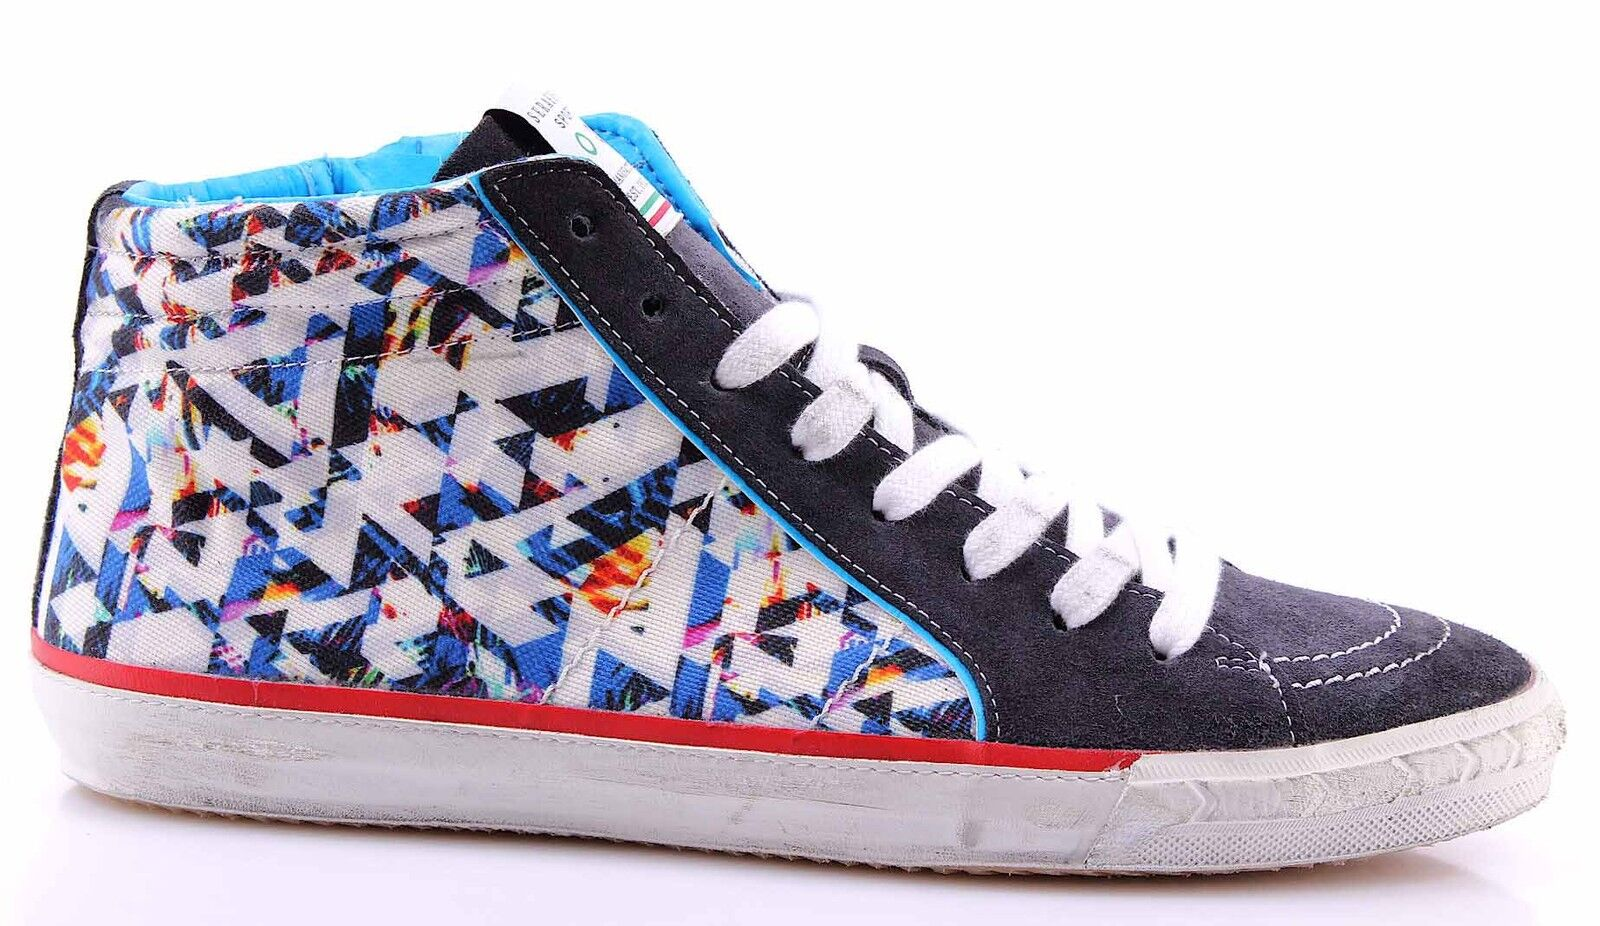 Men's shoes High Top Sneakers SERAFINI Sport 4191 Caracas 3D Ice Multicolor New